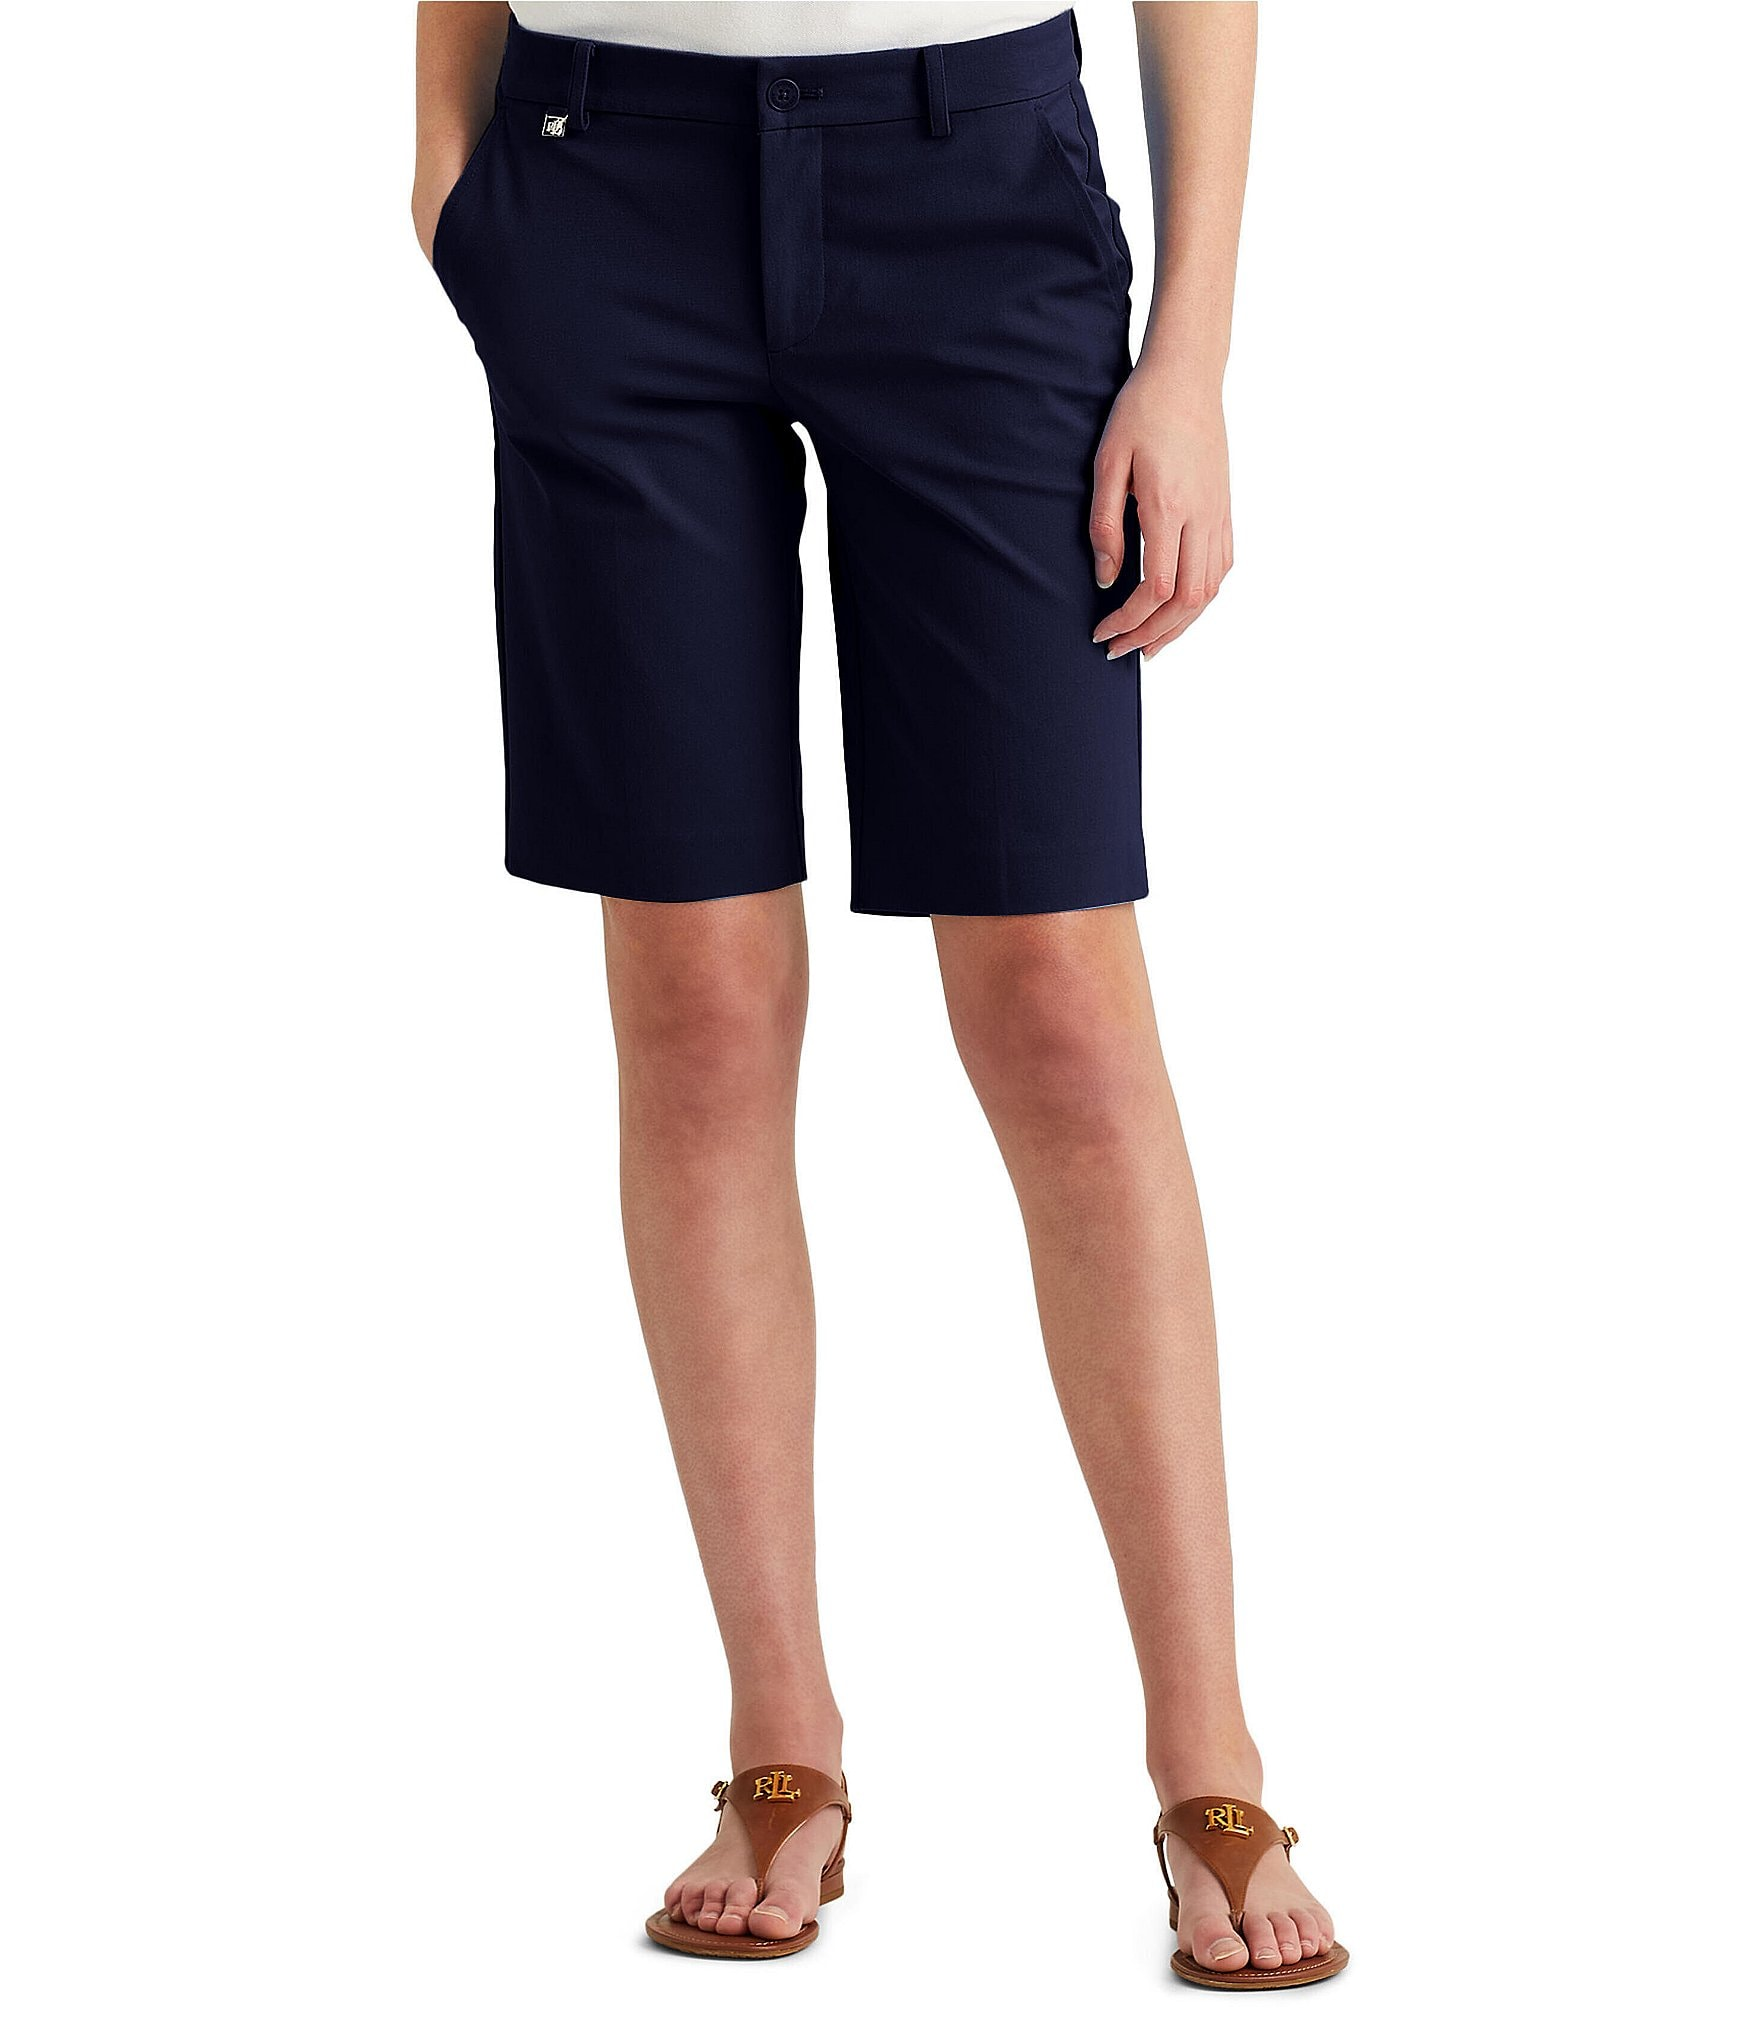 0c005fed Women's Shorts | Dillard's